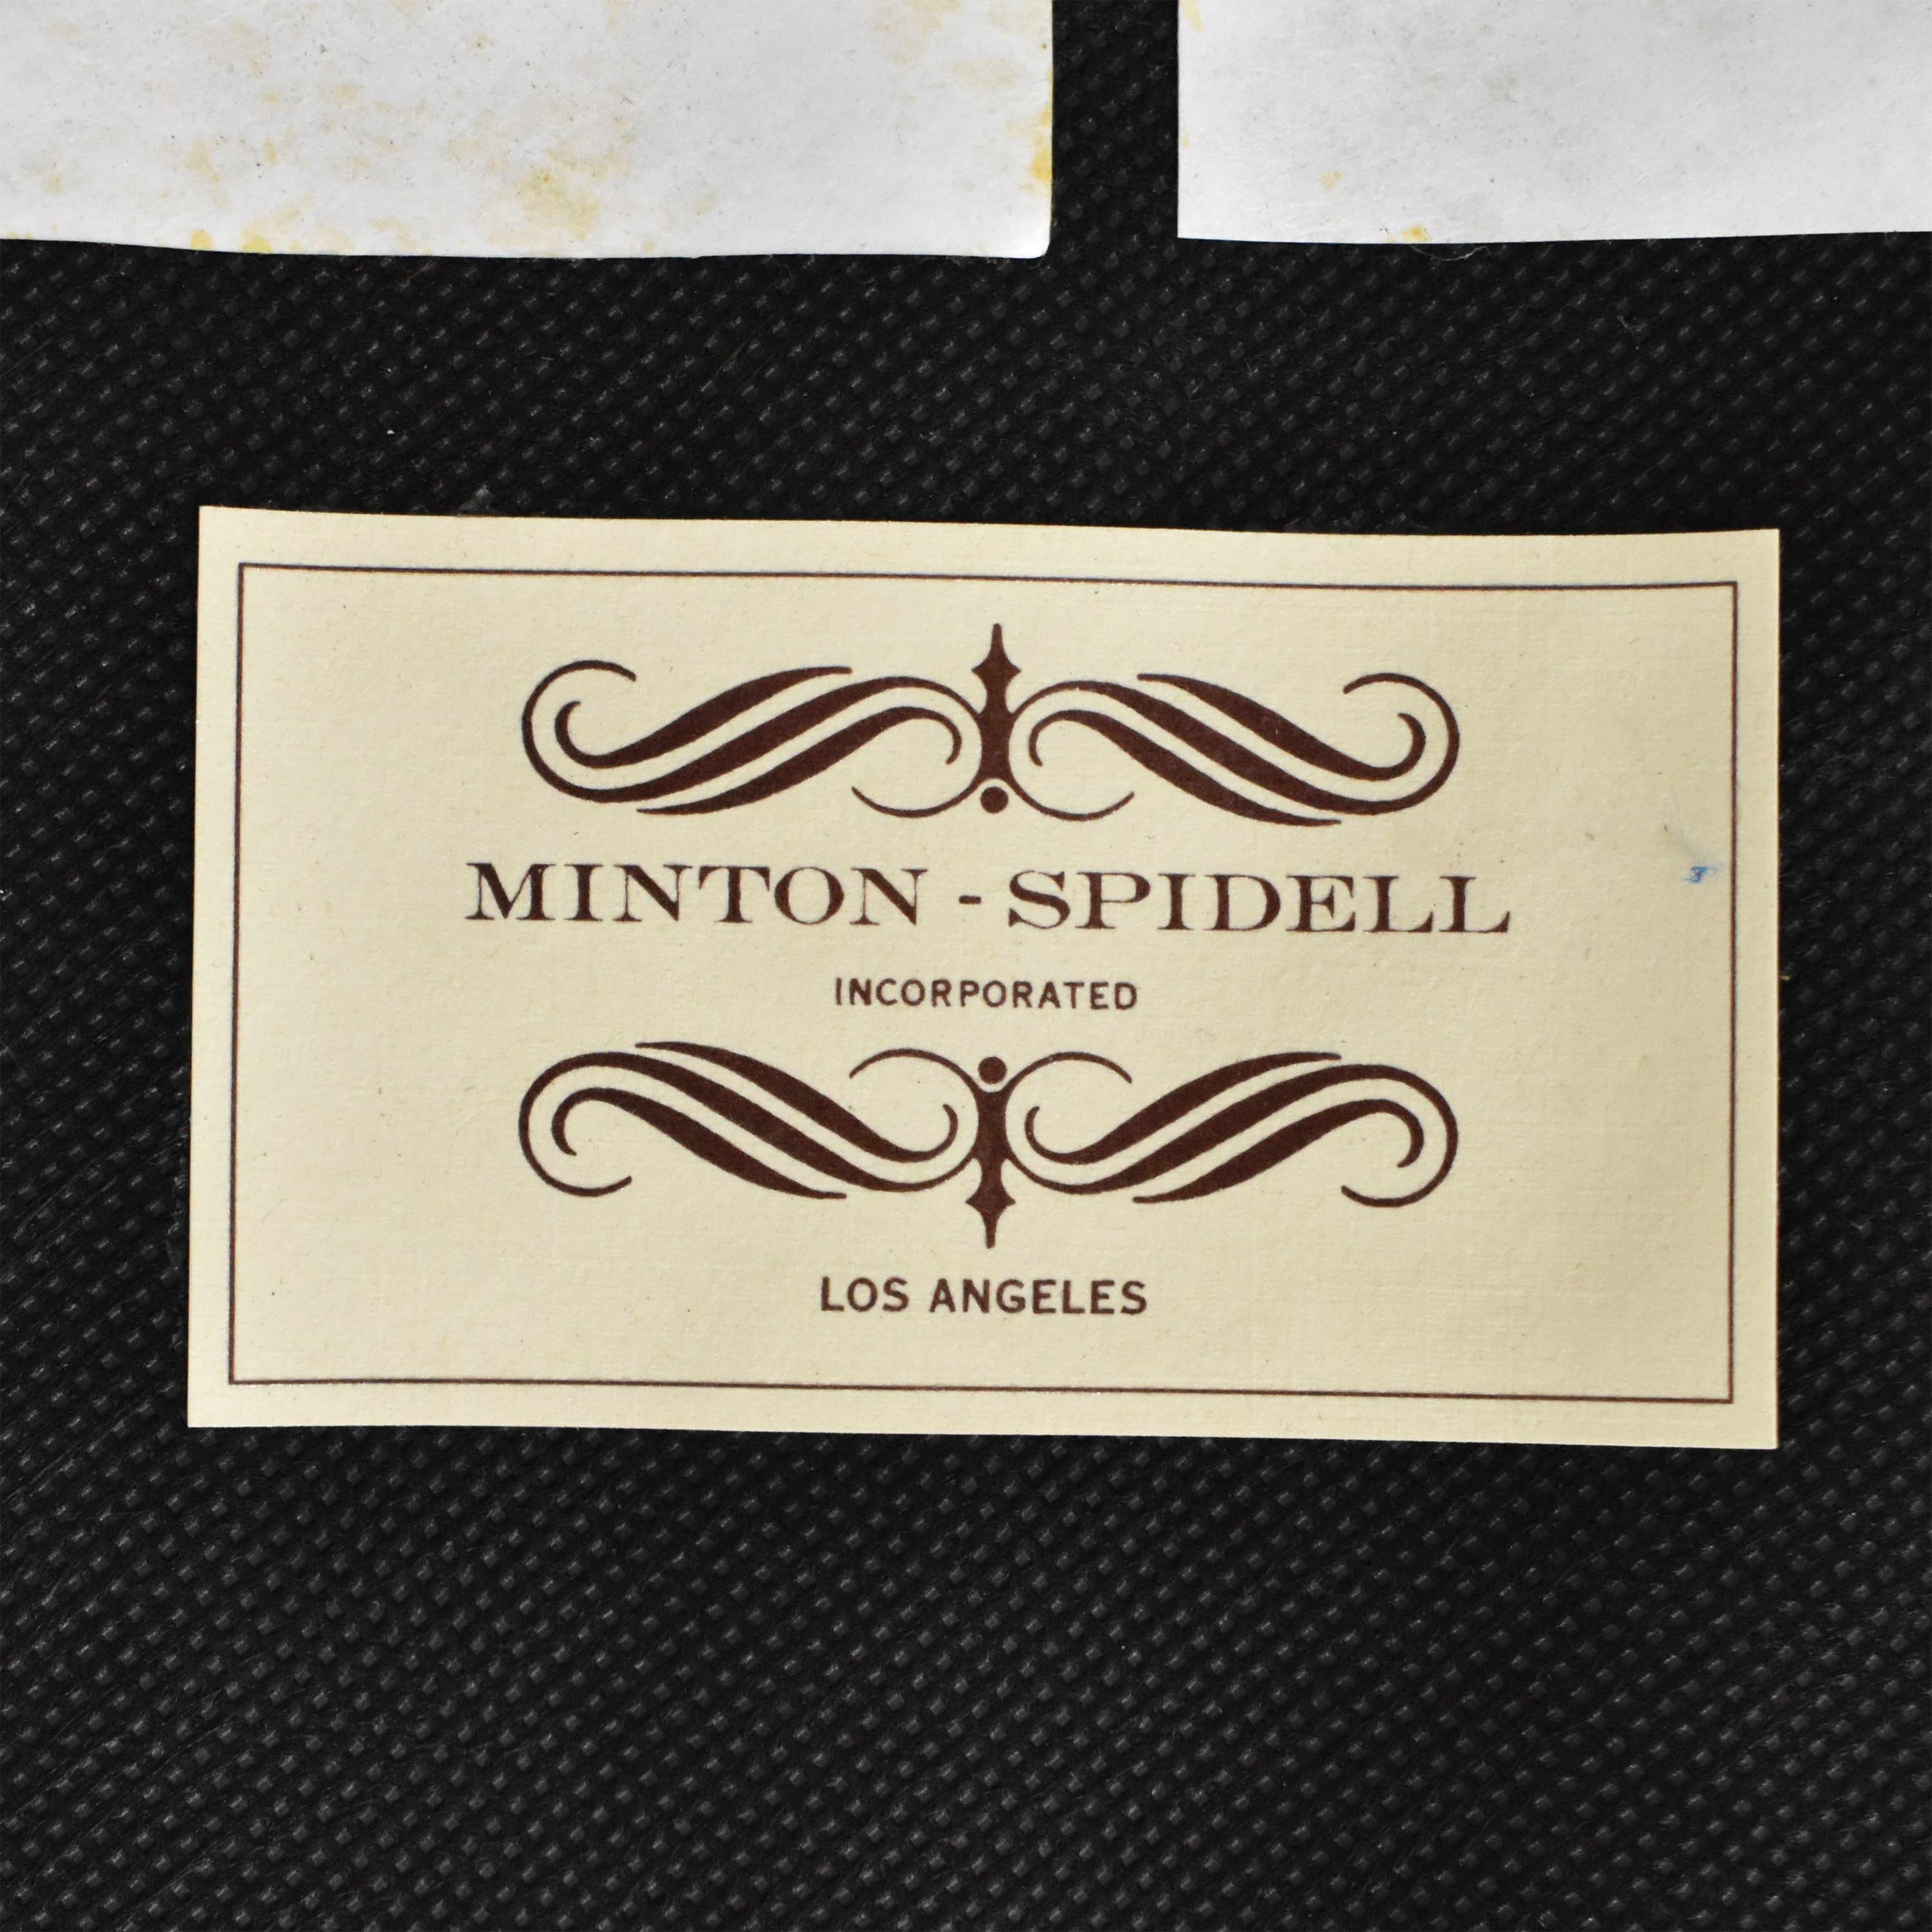 buy Minton-Spidell Regence Dining Side Chairs Minton-Spidell Chairs